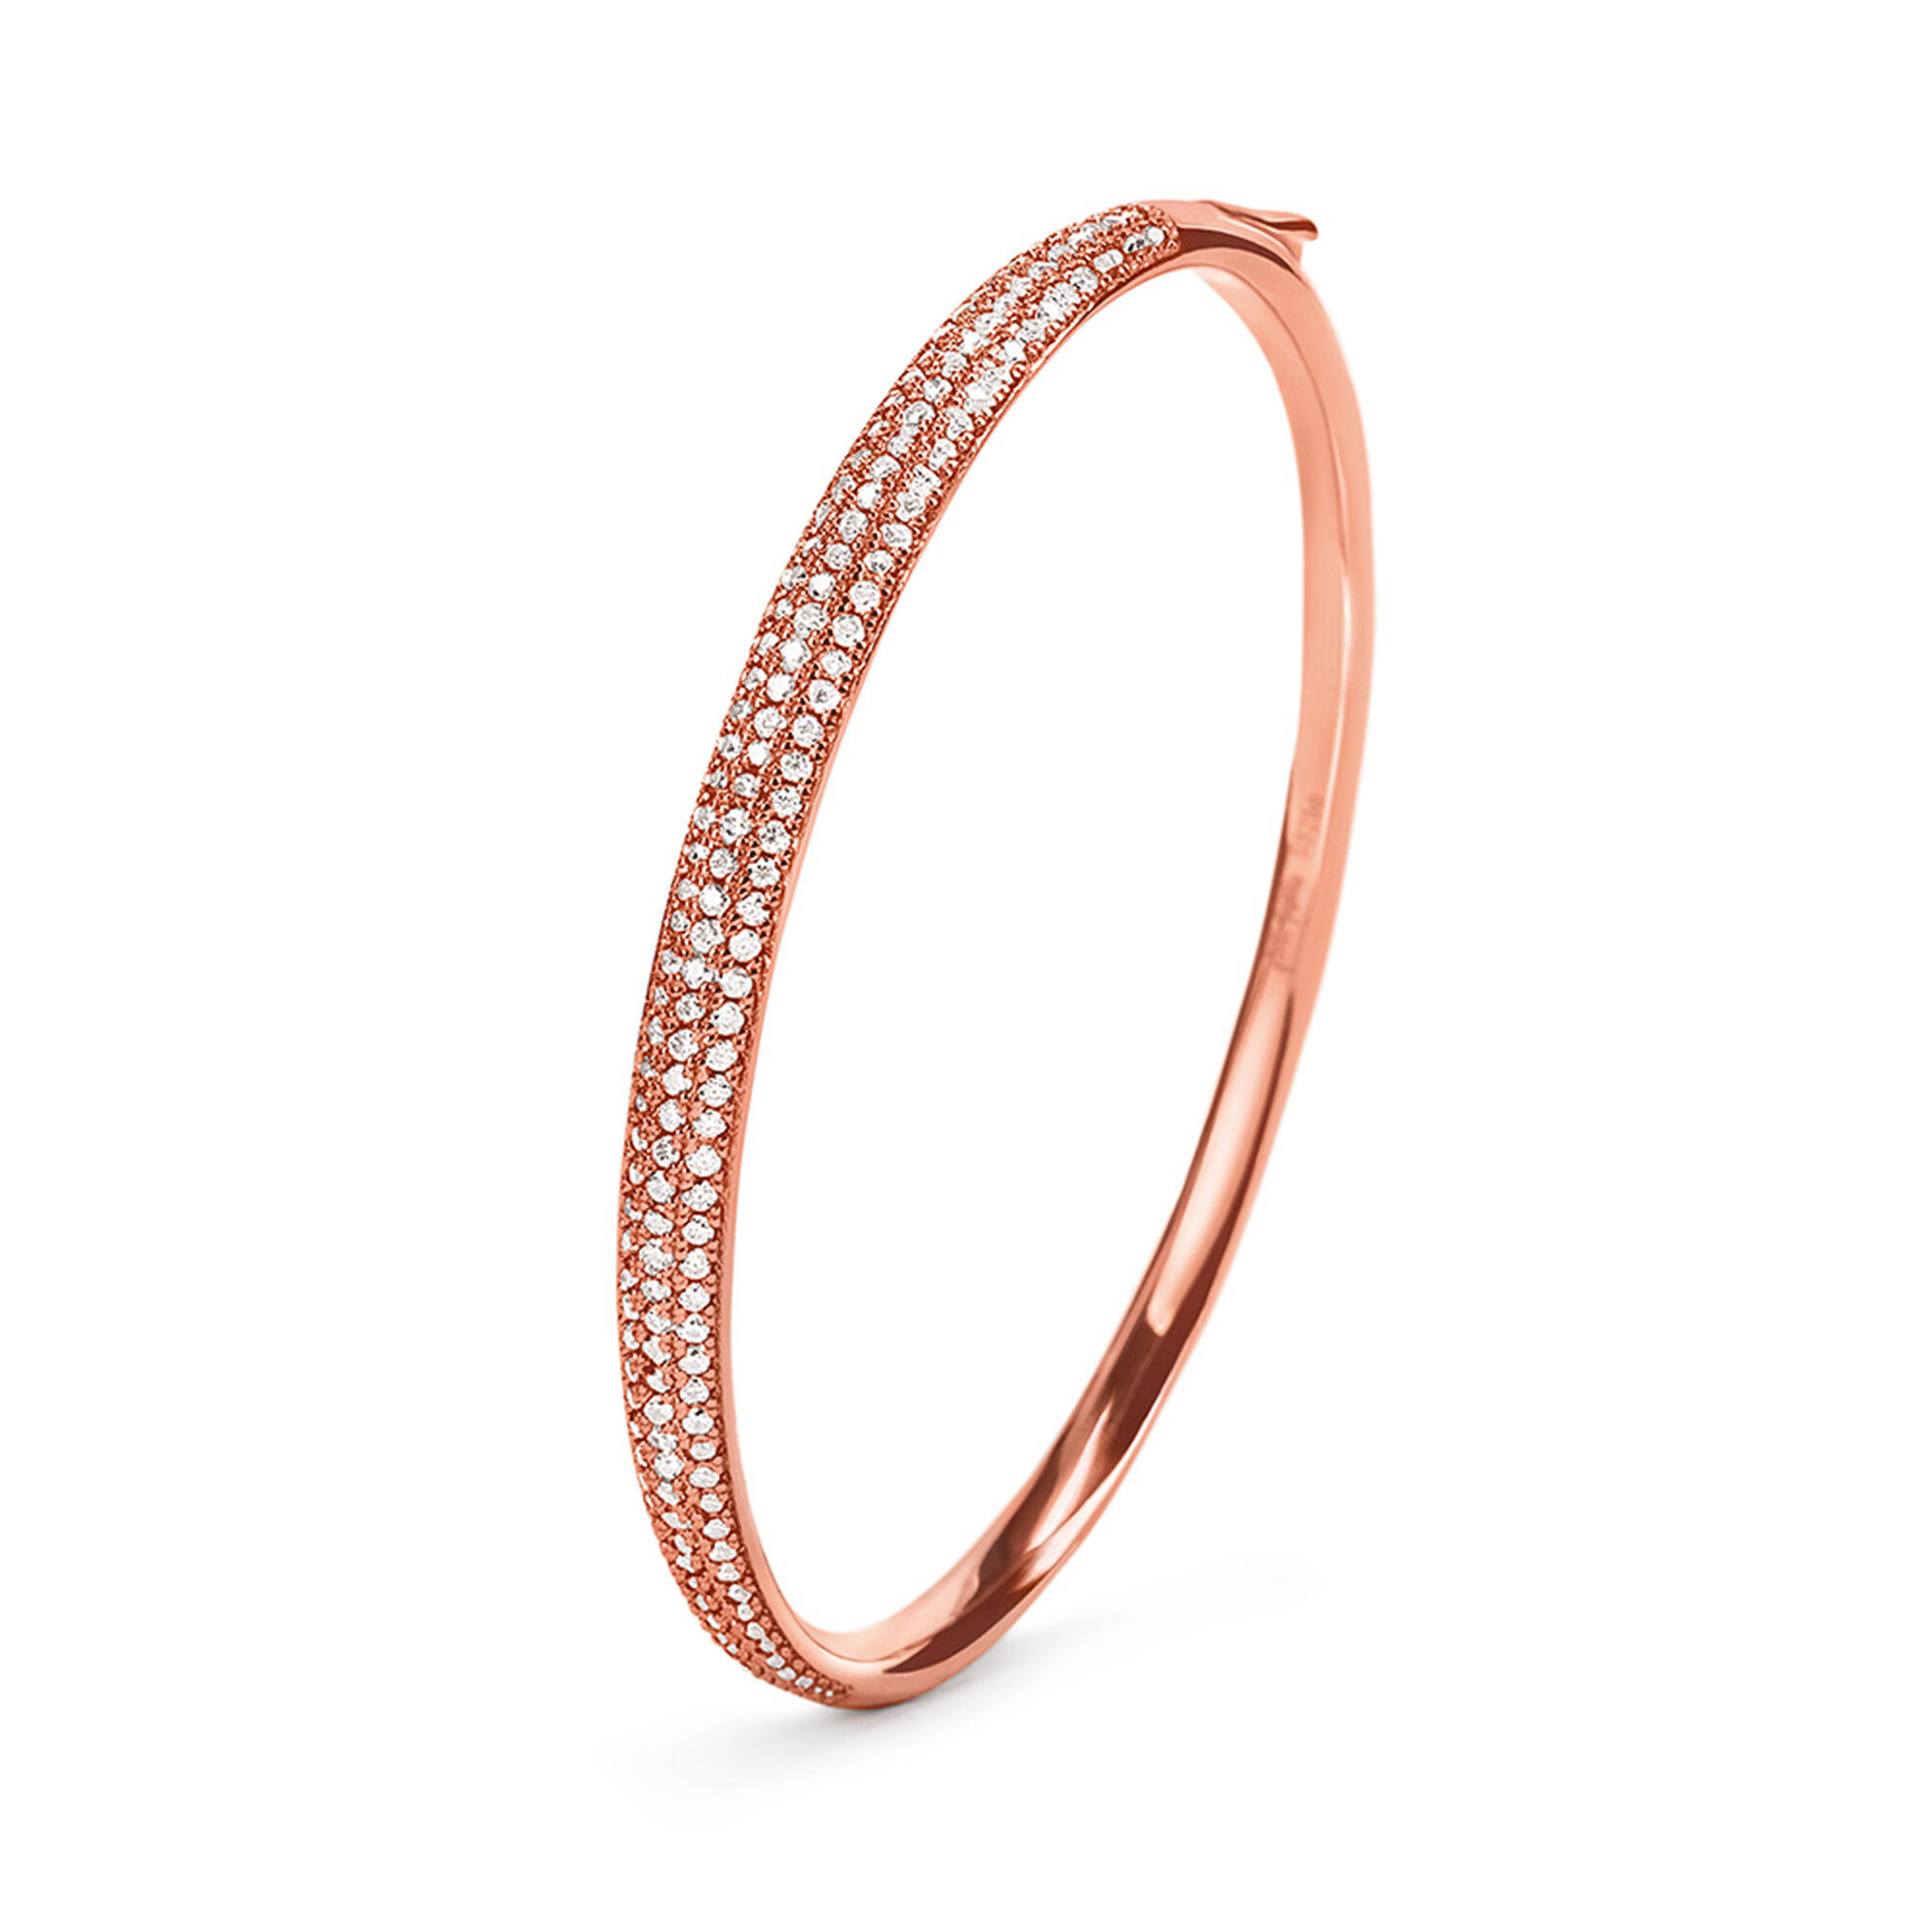 oval gold jewellery image bangles solid from bracelet thick rose bangle